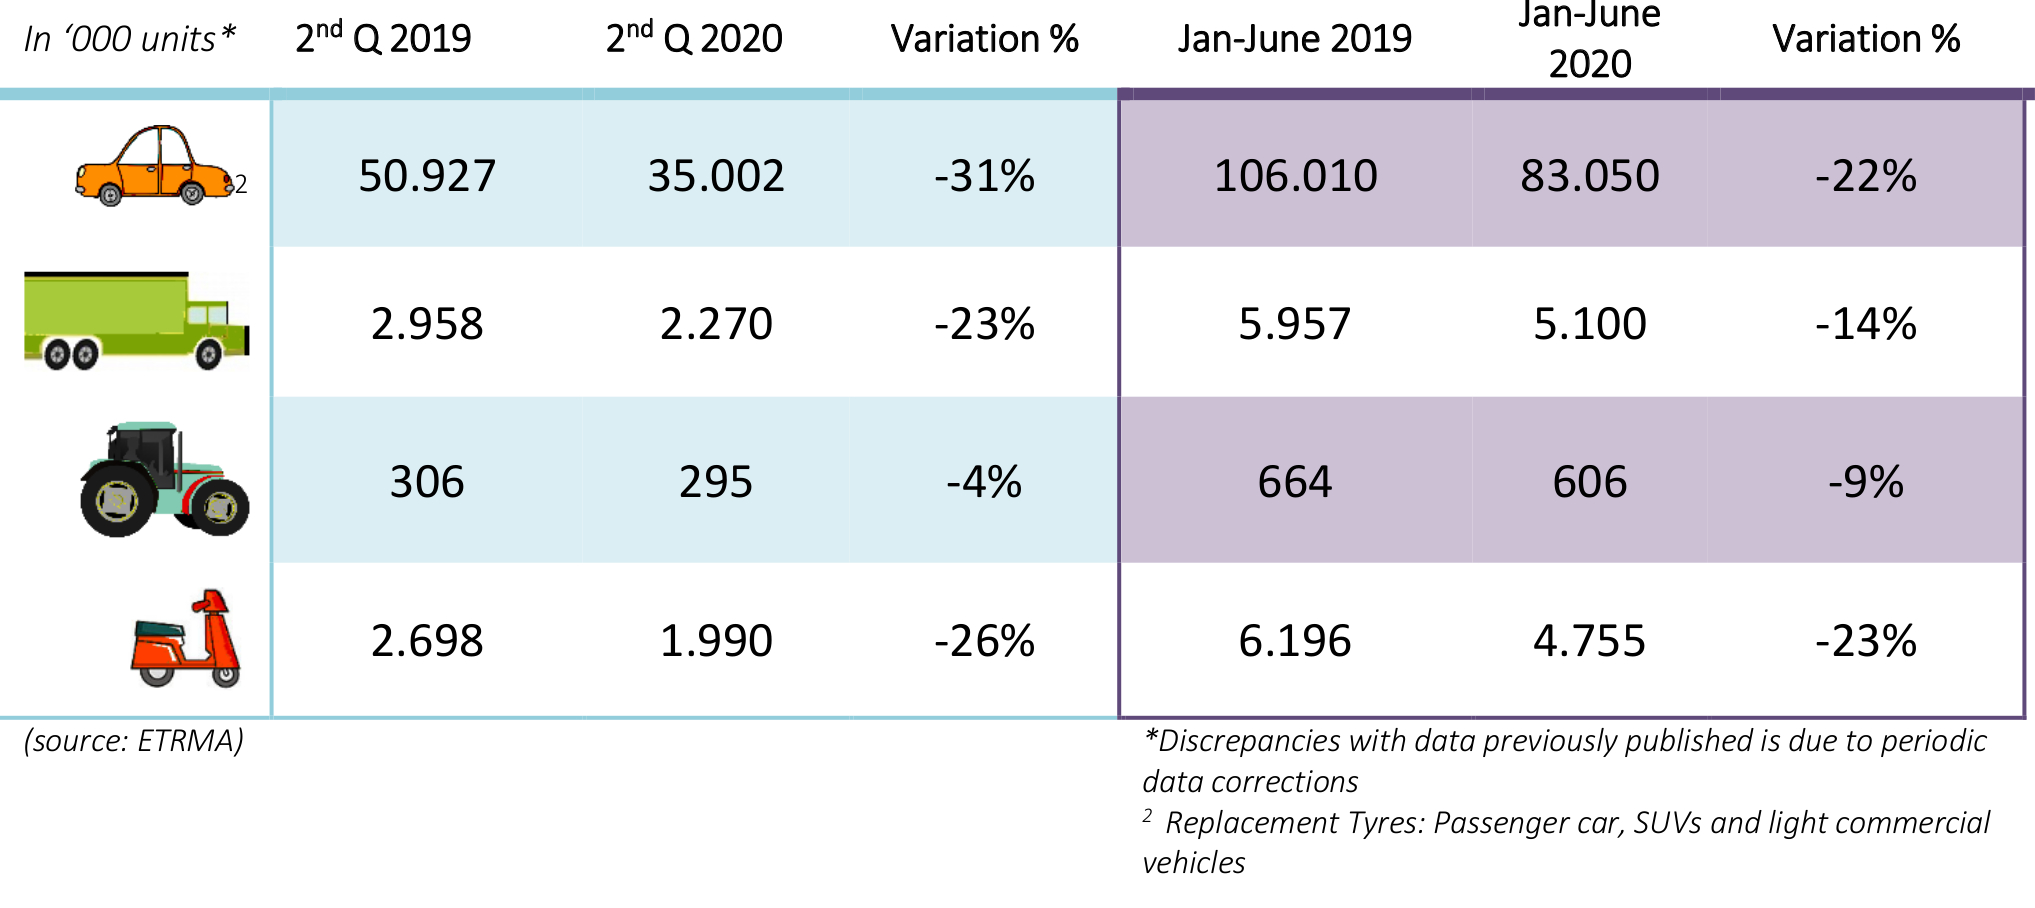 ETRMA data confirms steep drop in replacement tyre sales